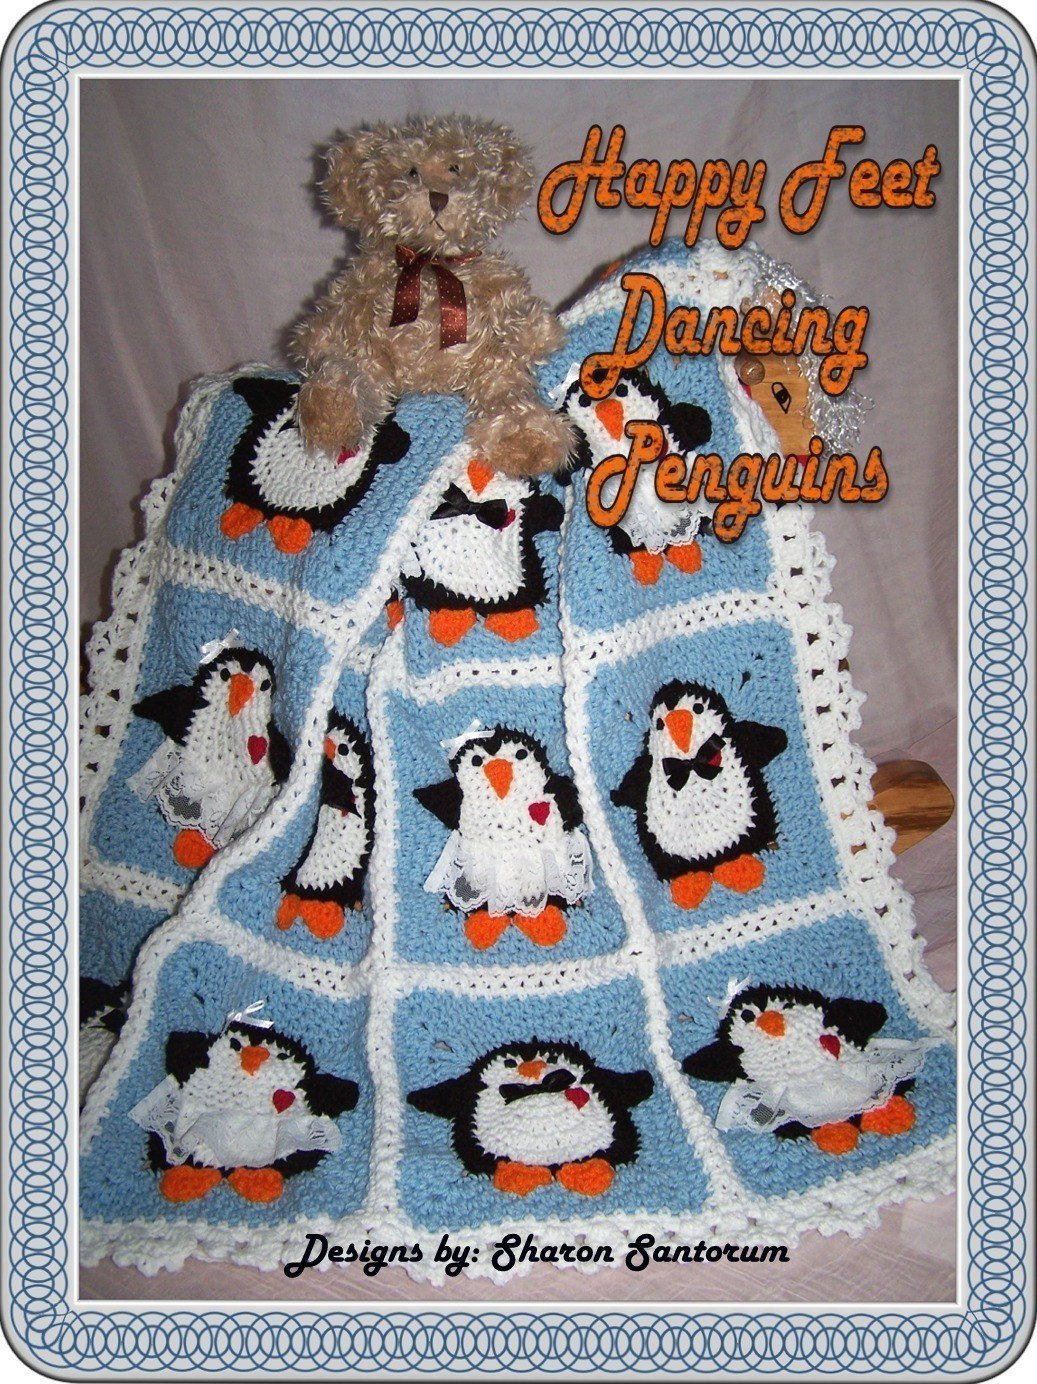 Baby Boy Crochet Blanket Patterns Beautiful Dancing Penguins Crochet Baby Afghan or Blanket Pattern Pdf Of Baby Boy Crochet Blanket Patterns Beautiful Pics for Crochet Baby Boy Blanket Patterns